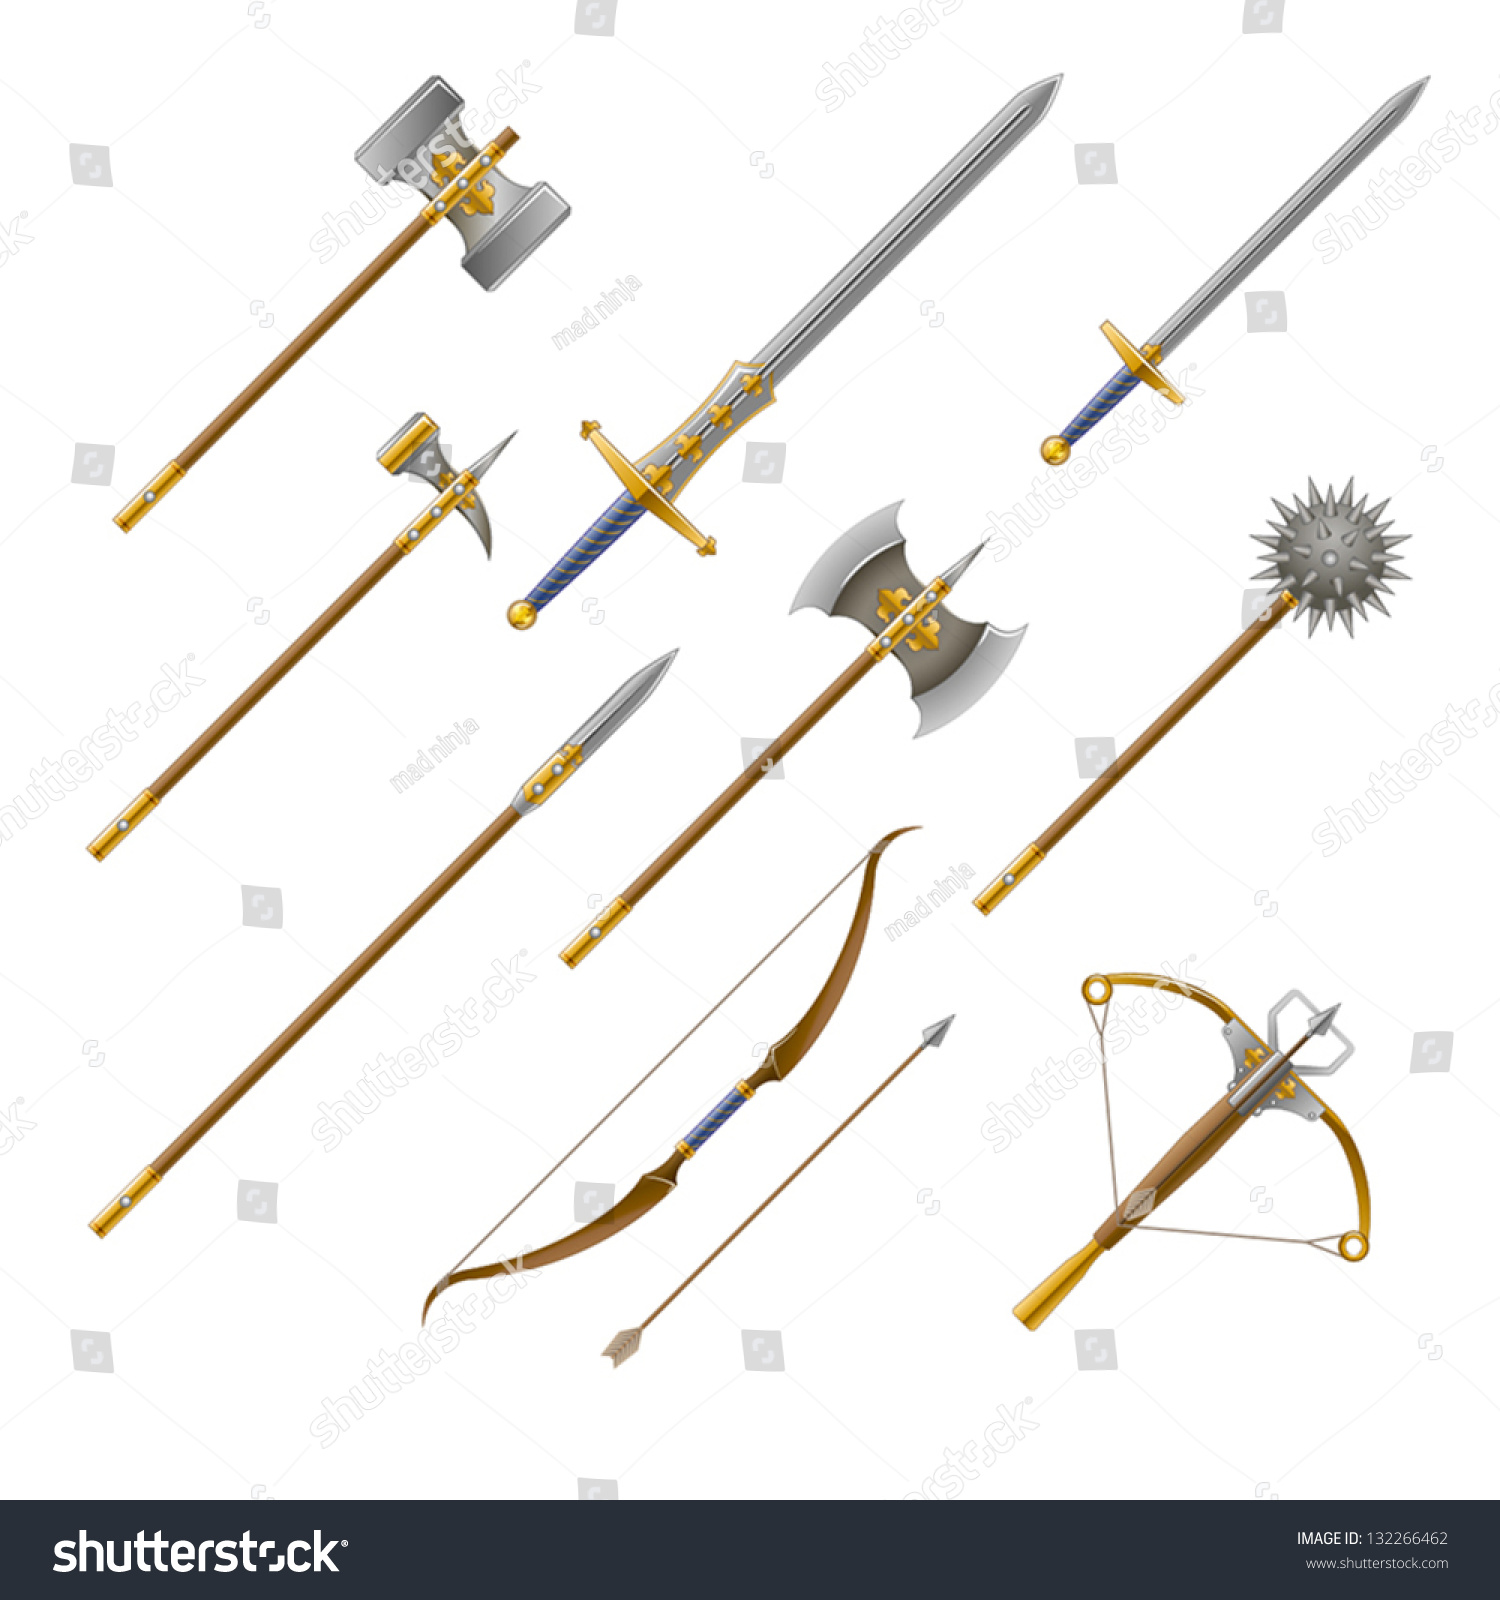 medieval weapons essay Medieval weapons - information gathered for essay and term paper writing about the weapons used during the medieval period of history in england and europe generally.